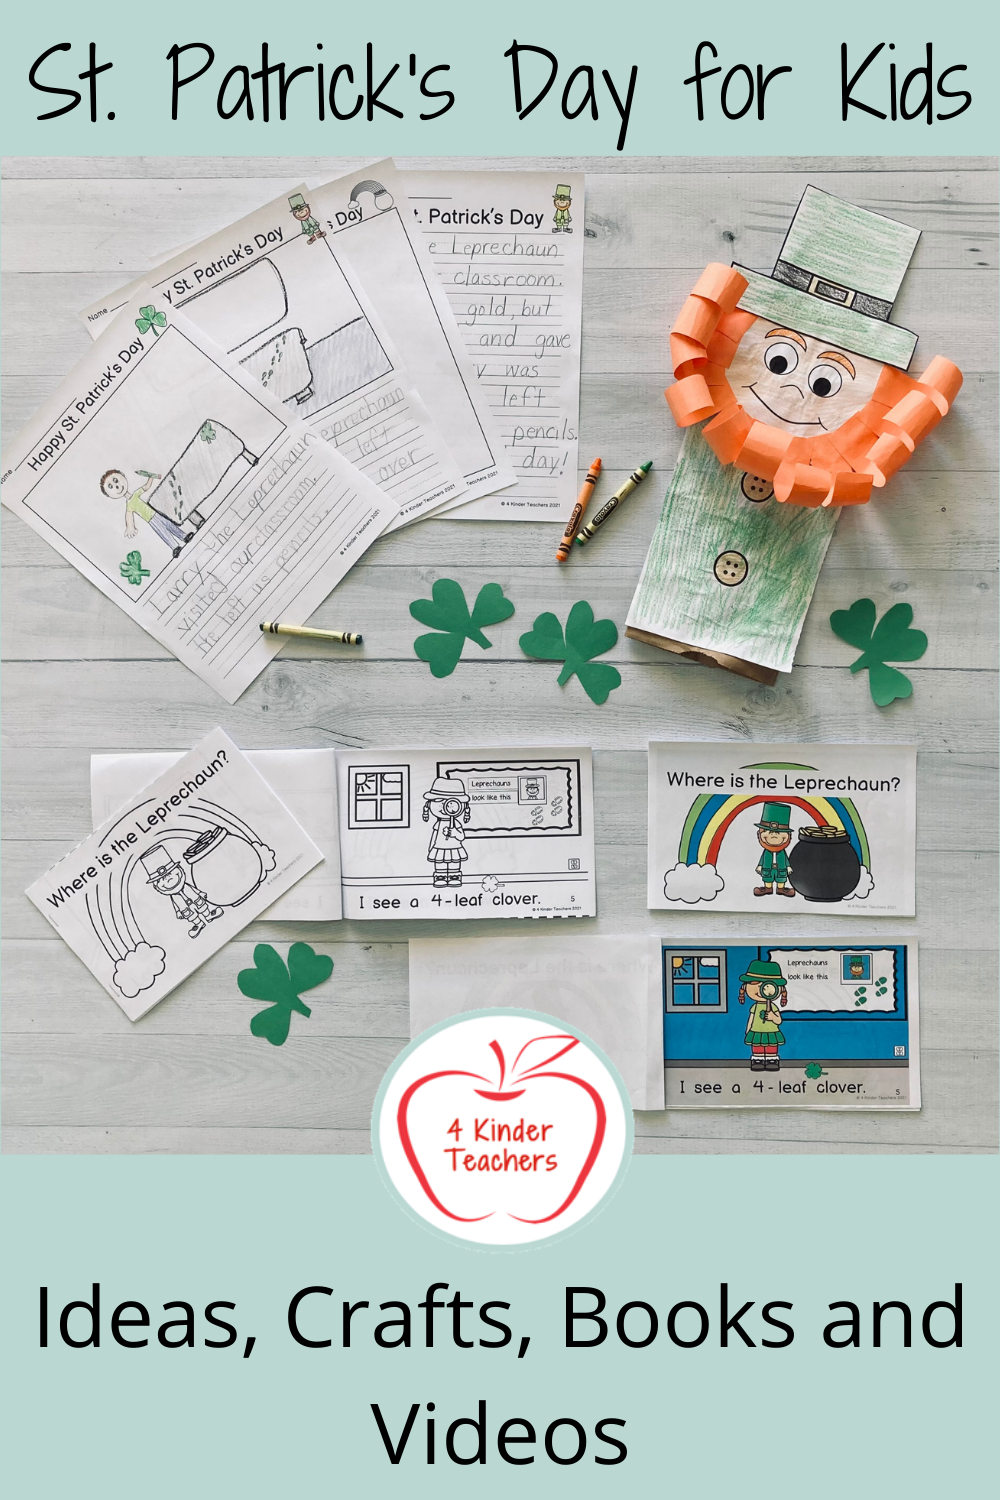 St. Patrick's Day for Kids